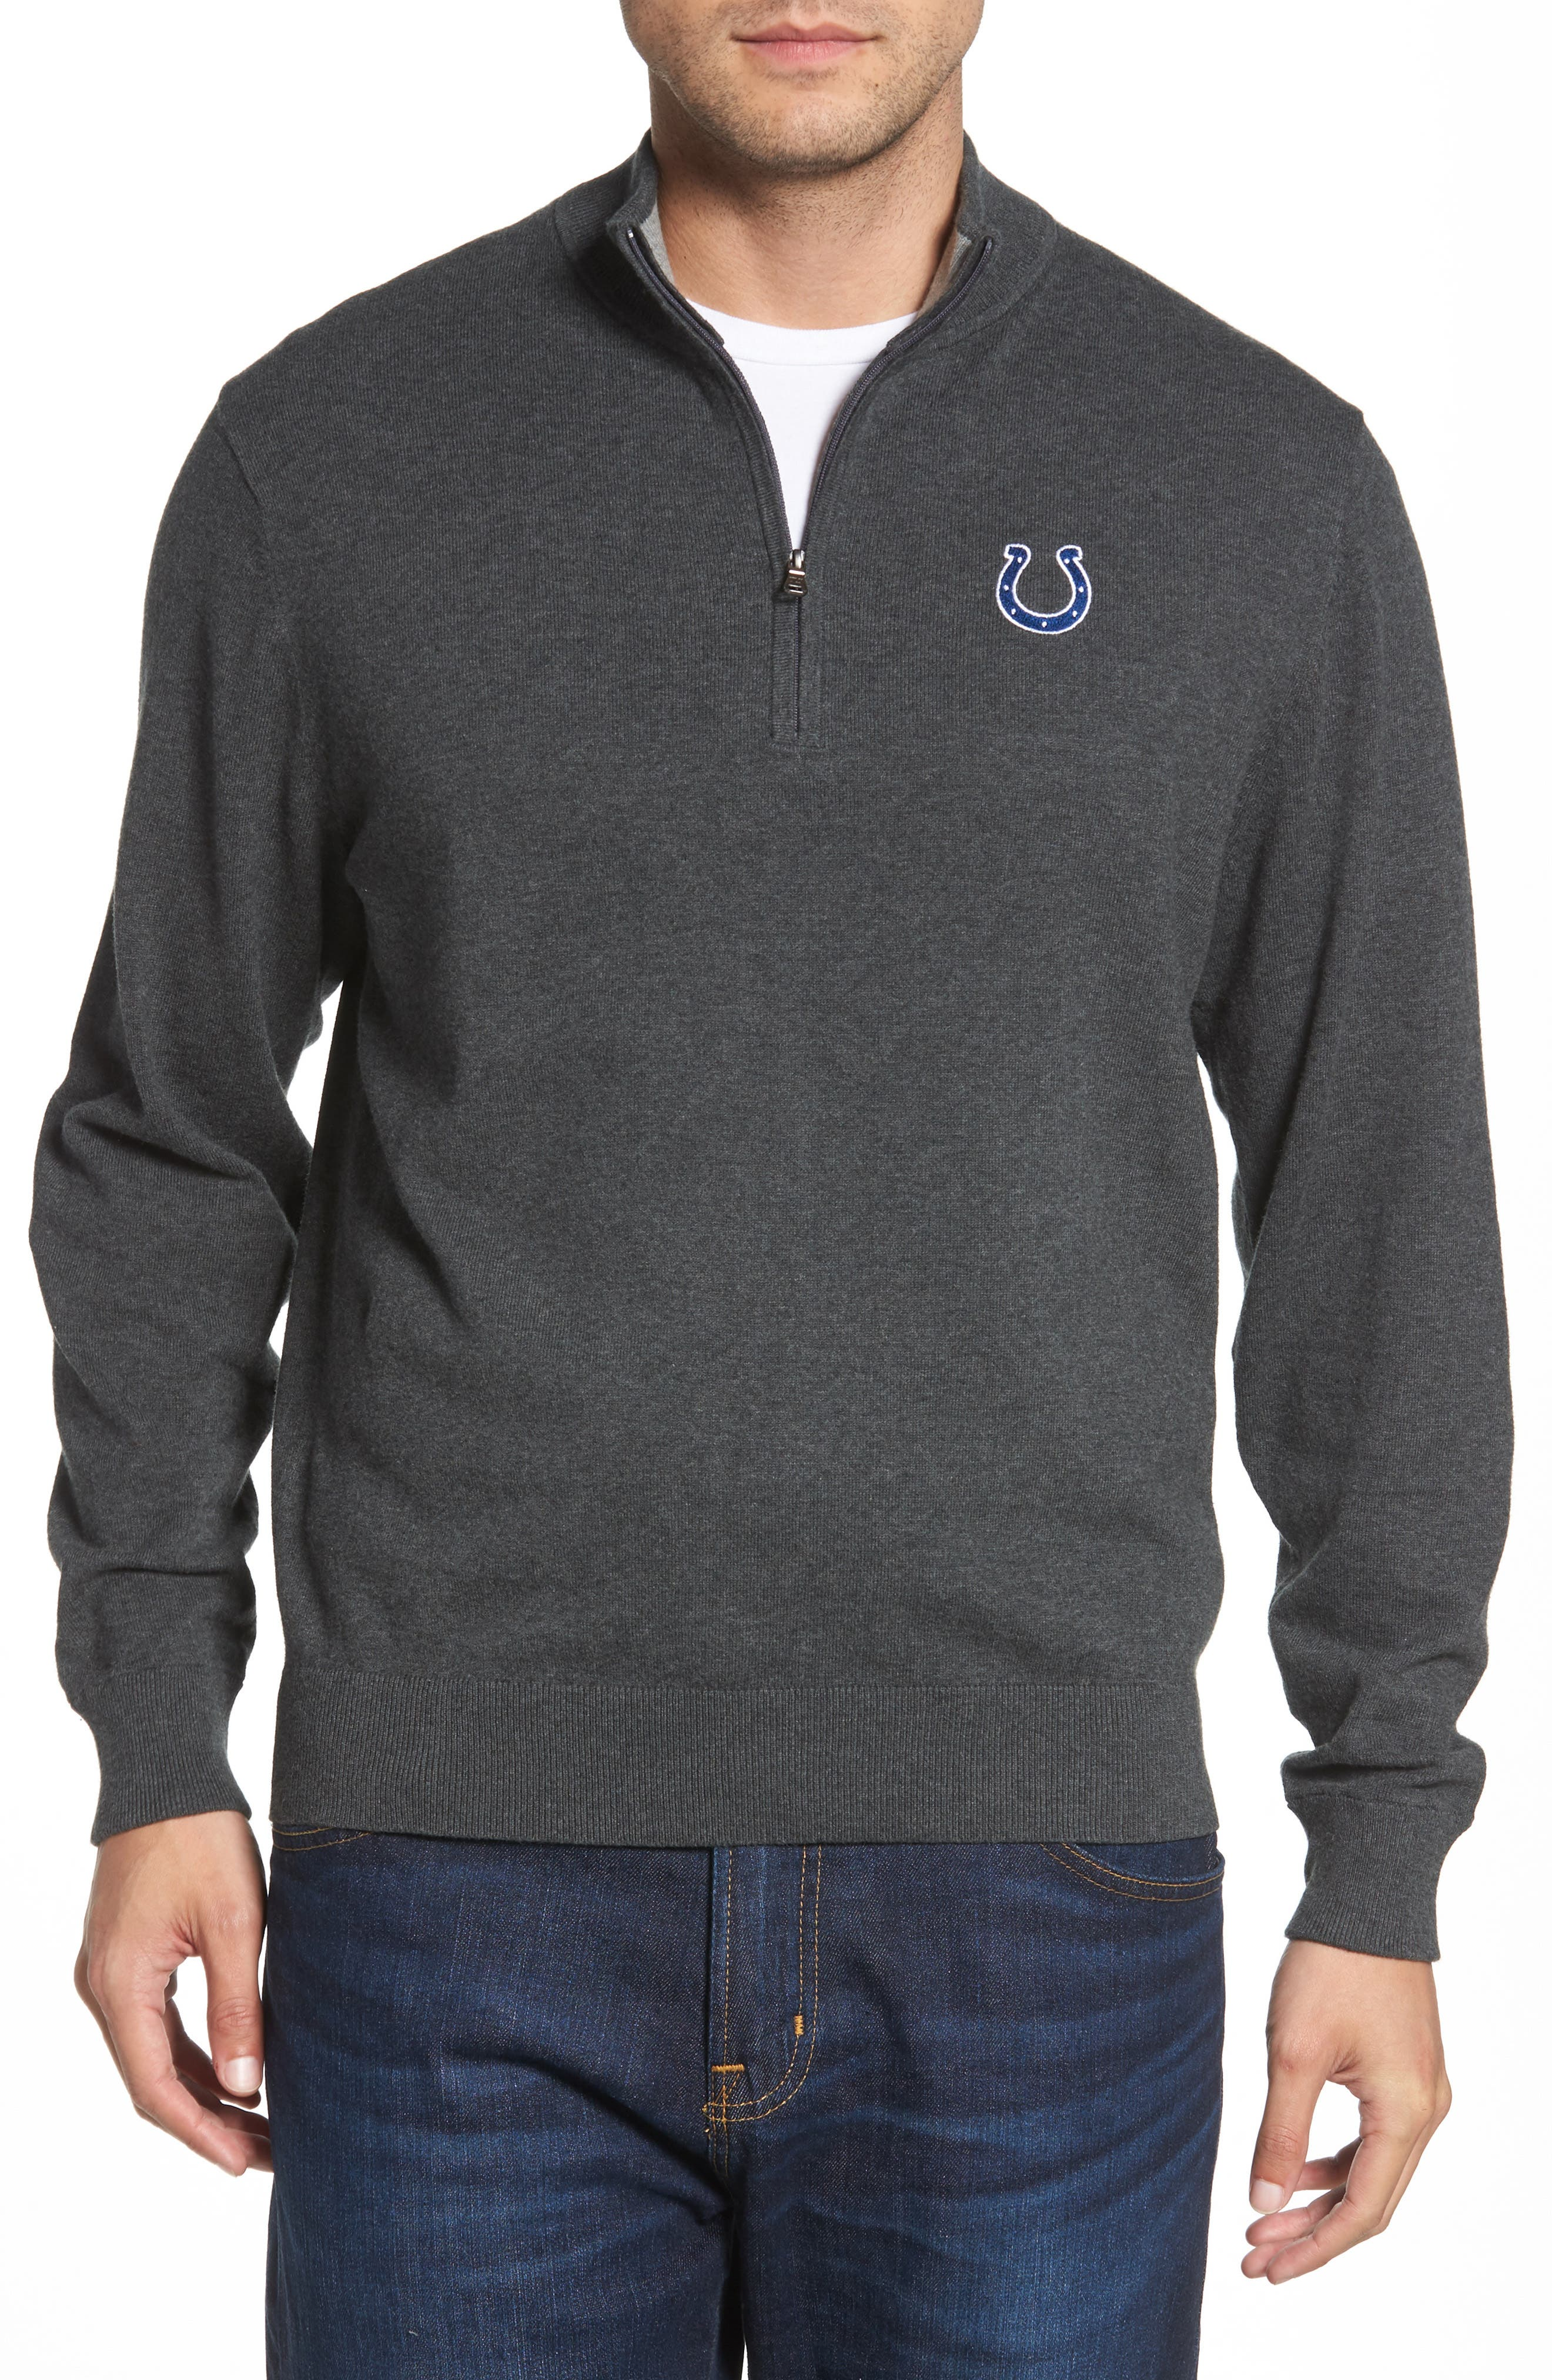 CUTTER & BUCK,                             Indianapolis Colts - Lakemont Regular Fit Quarter Zip Sweater,                             Main thumbnail 1, color,                             CHARCOAL HEATHER